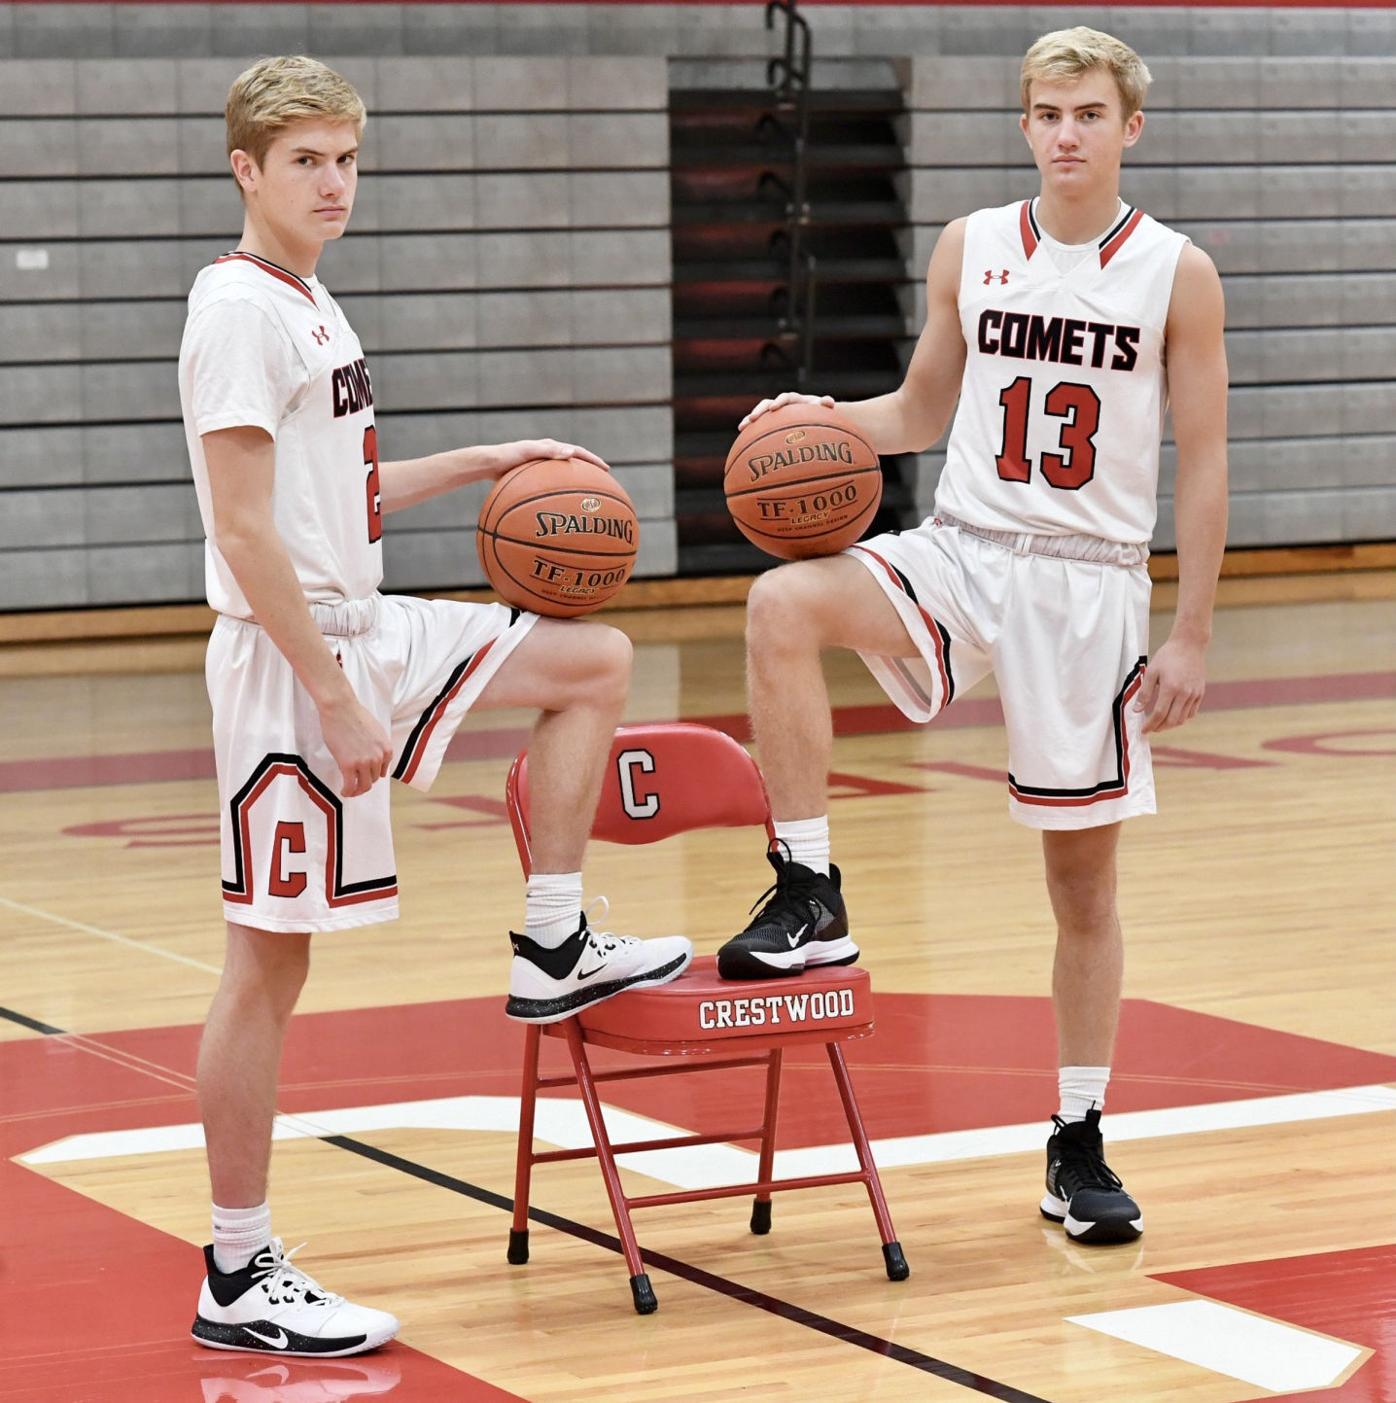 H.S. BOYS' BASKETBALL: Zaleski twins key to Comets' run